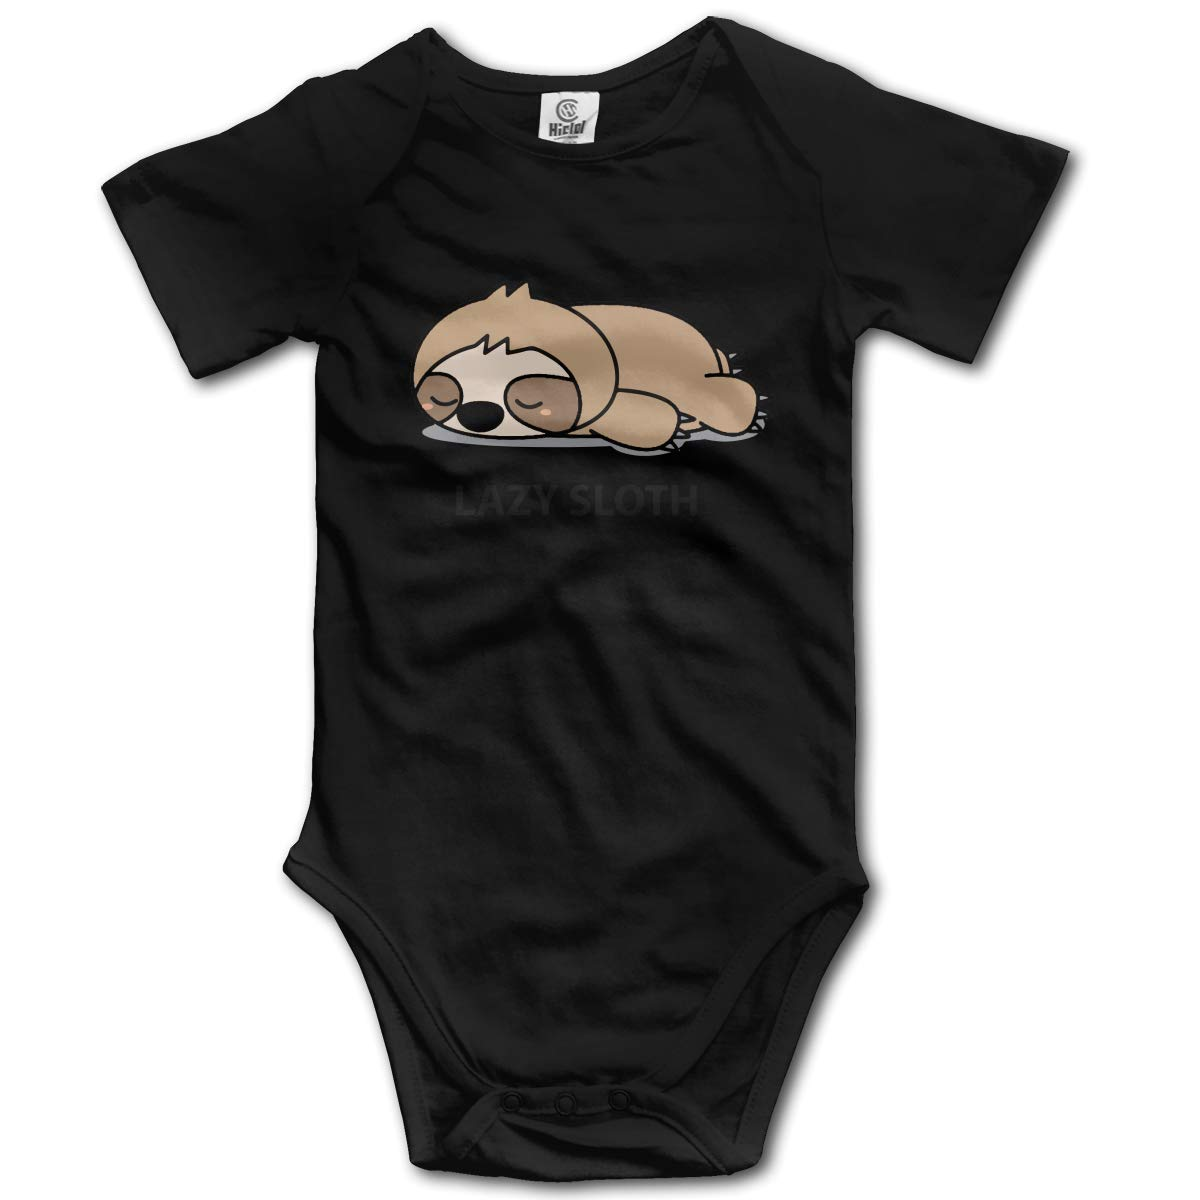 J122 Lazy Sloth Suit 6-24 Months Short Sleeve Climbing Clothes